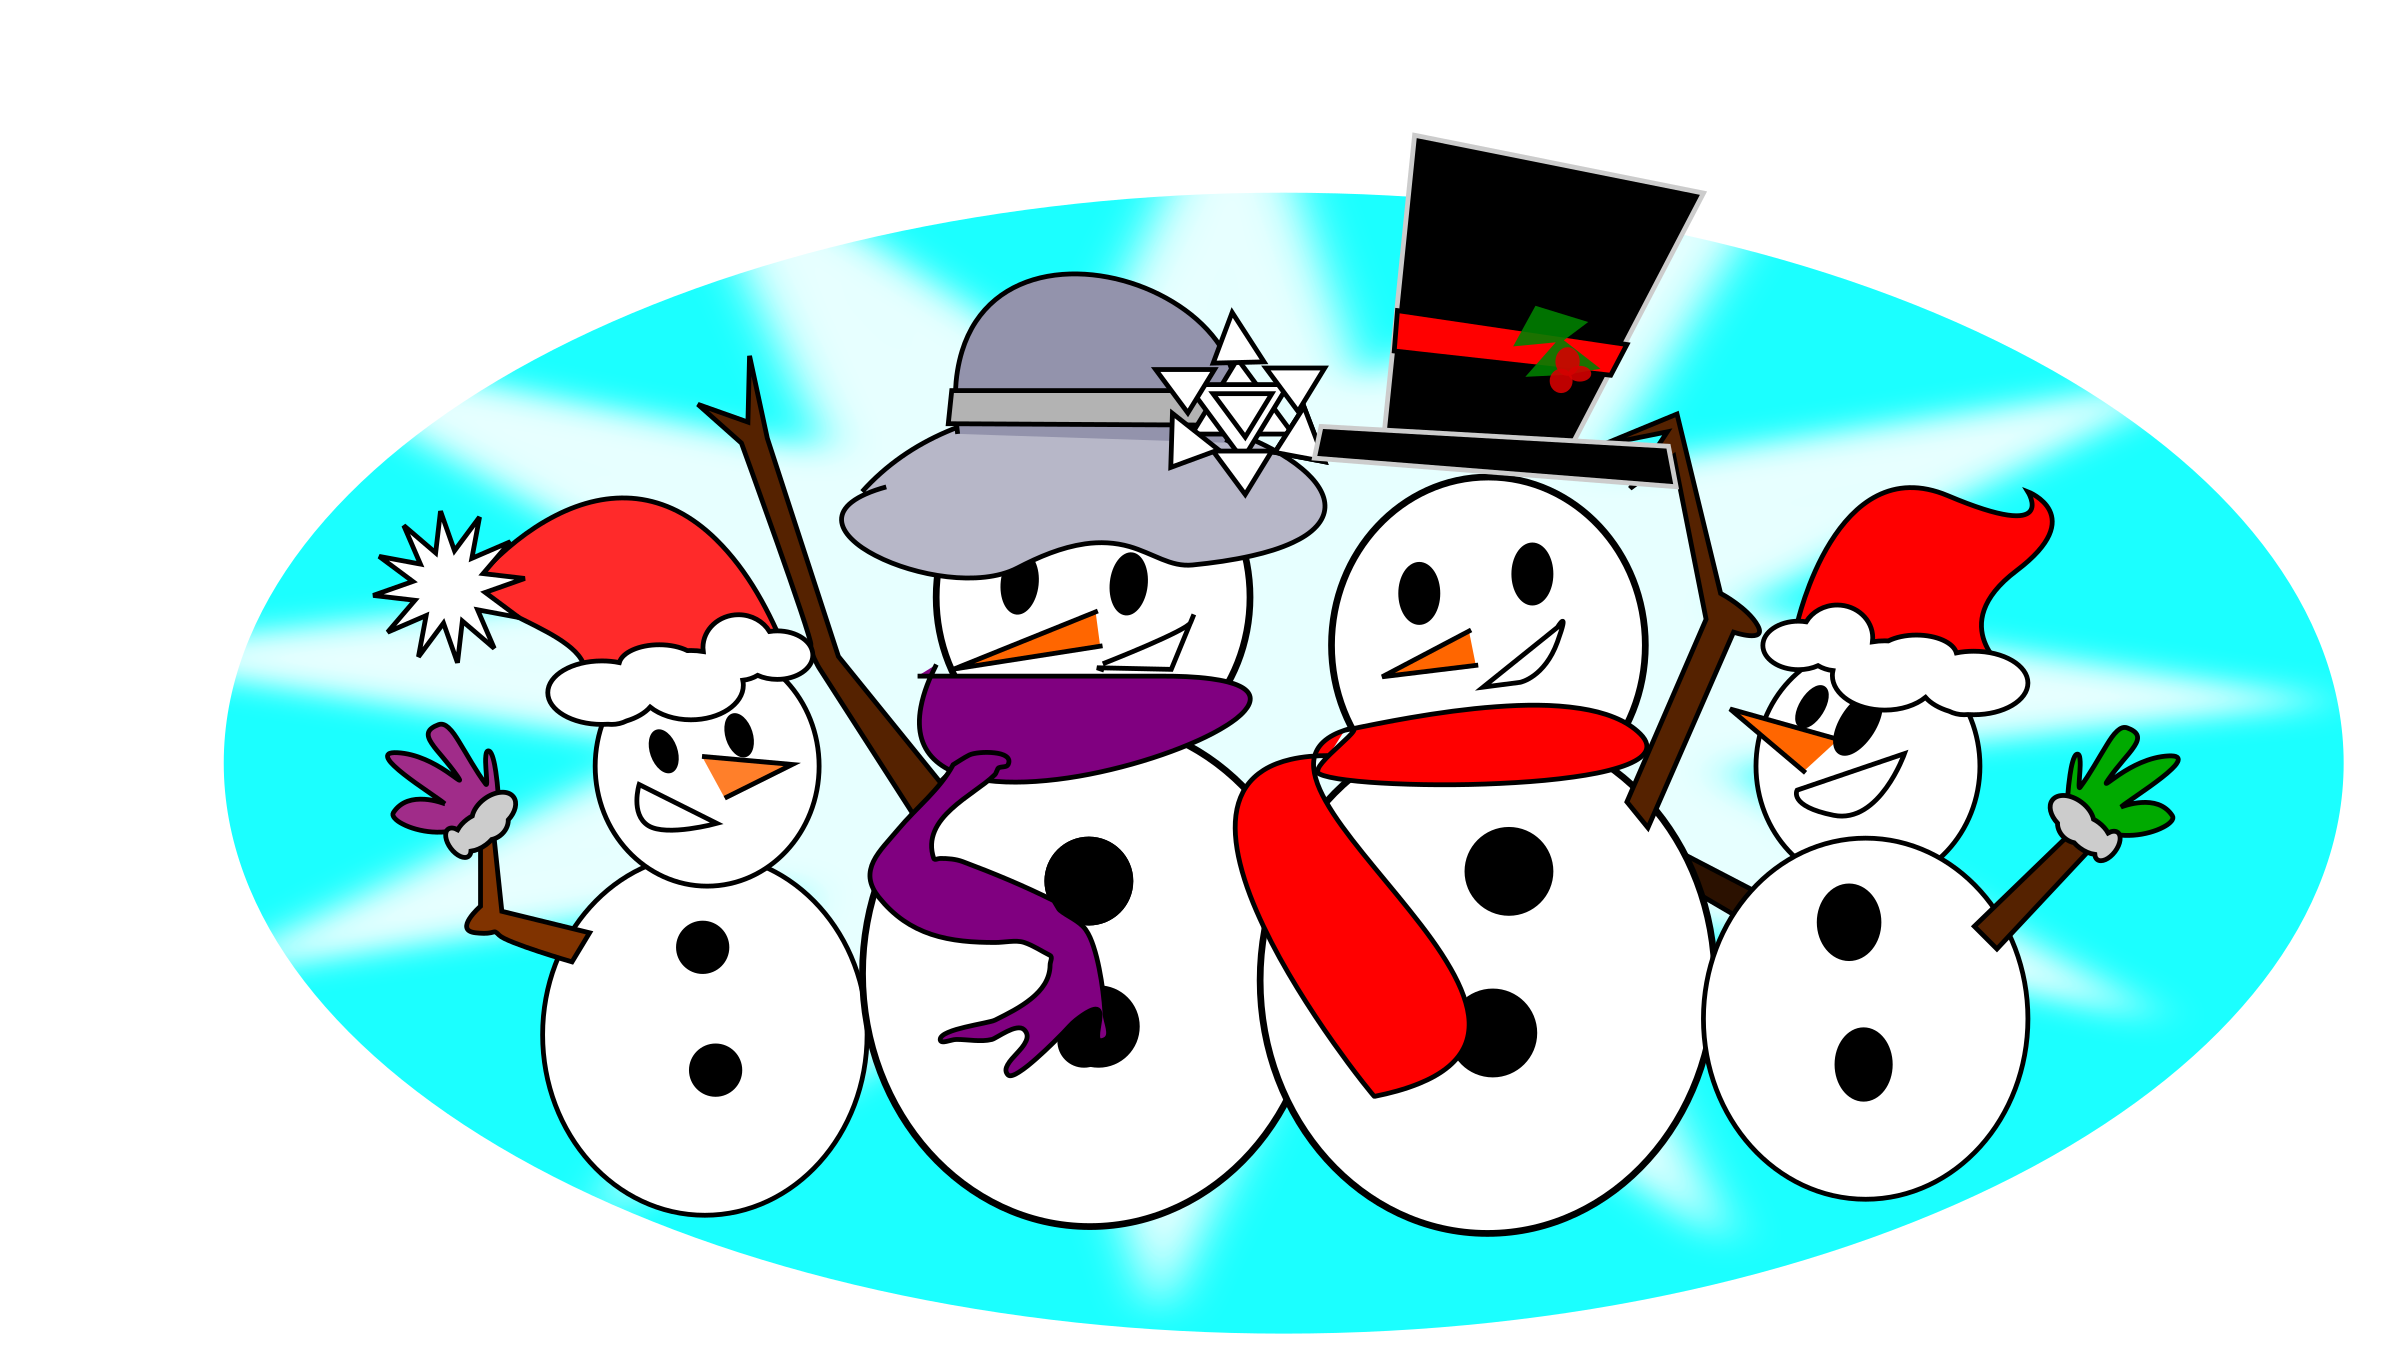 February clipart sign. Snowman family big image